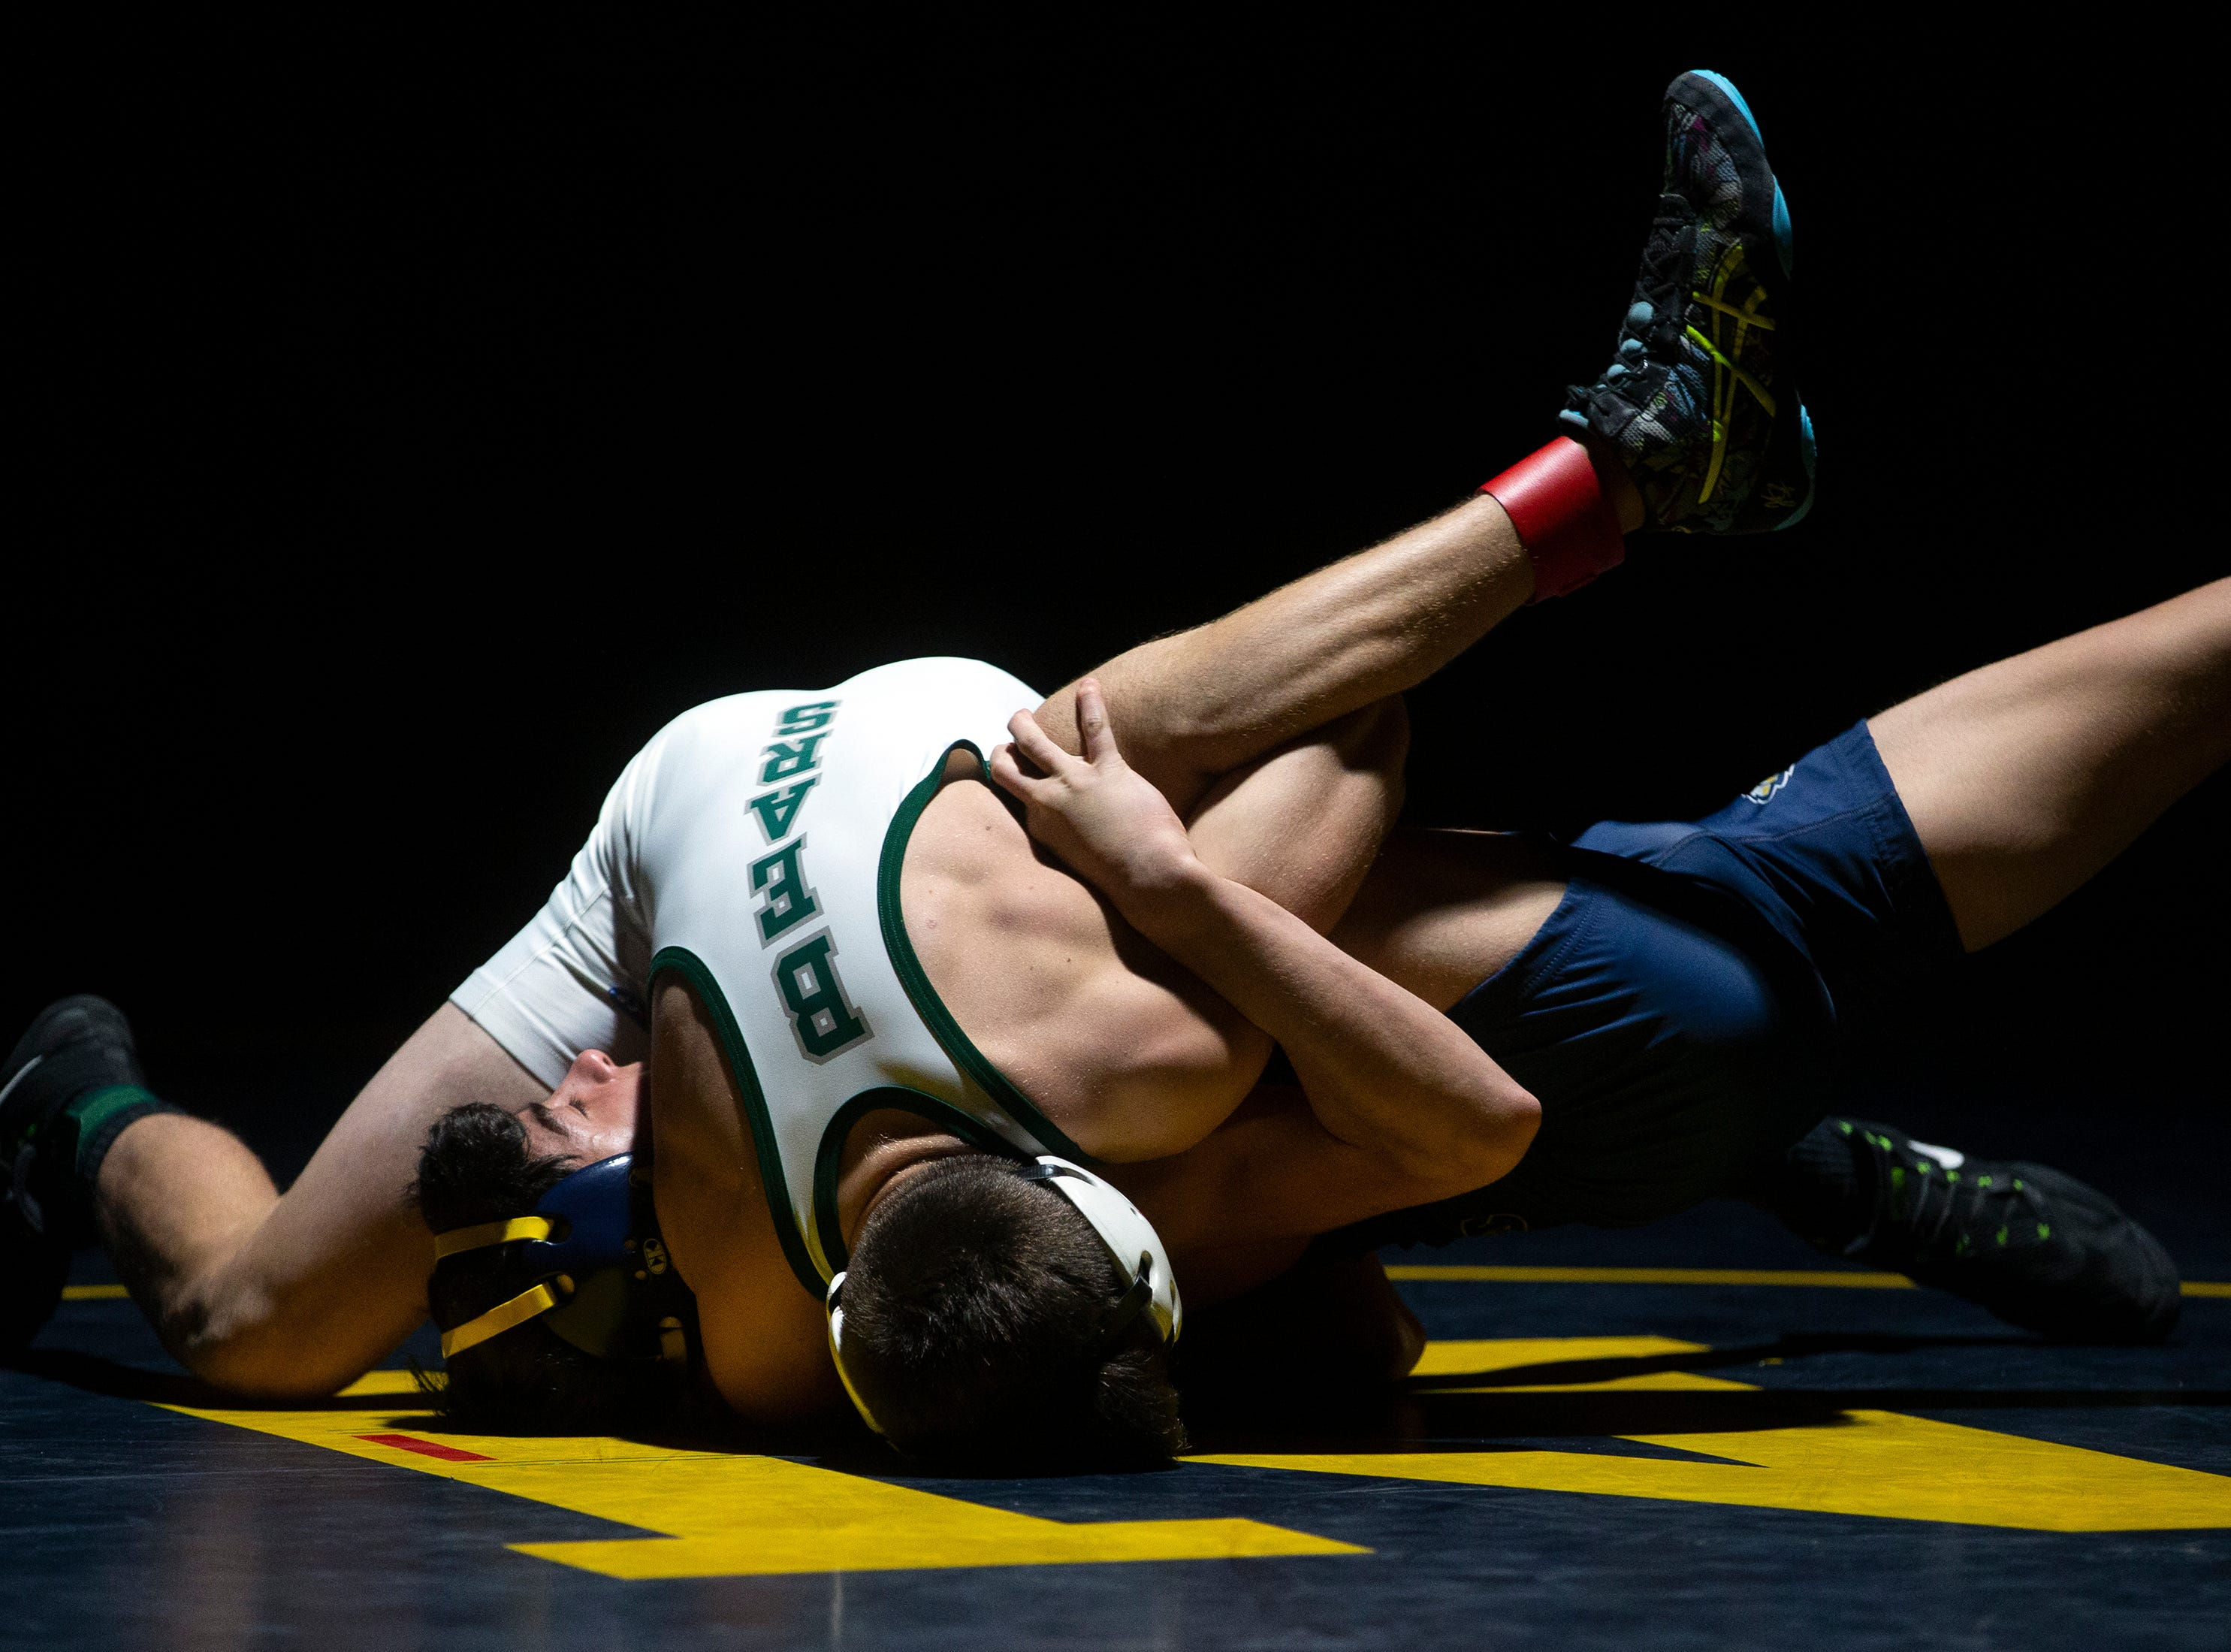 Palmetto Ridge High School's  Brennan Van Hoecke pins Naples' Anthony Delashmet in the 113-pound match up during the Collier County Athletic Conference wrestling championship, Wednesday, Jan. 9, 2018, at Naples High School.